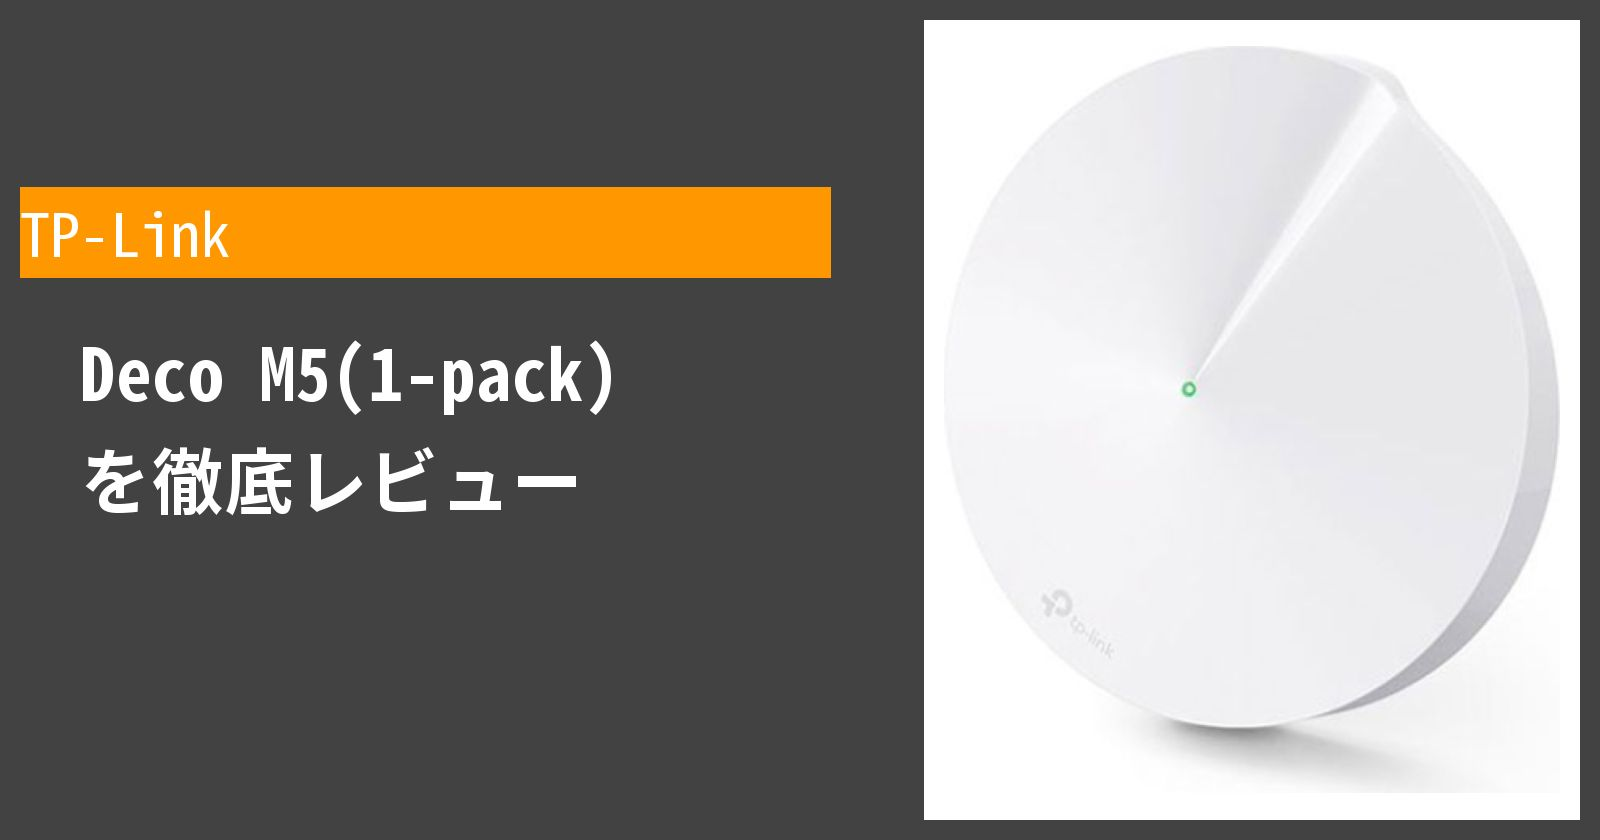 Deco M5(1-pack)を徹底評価